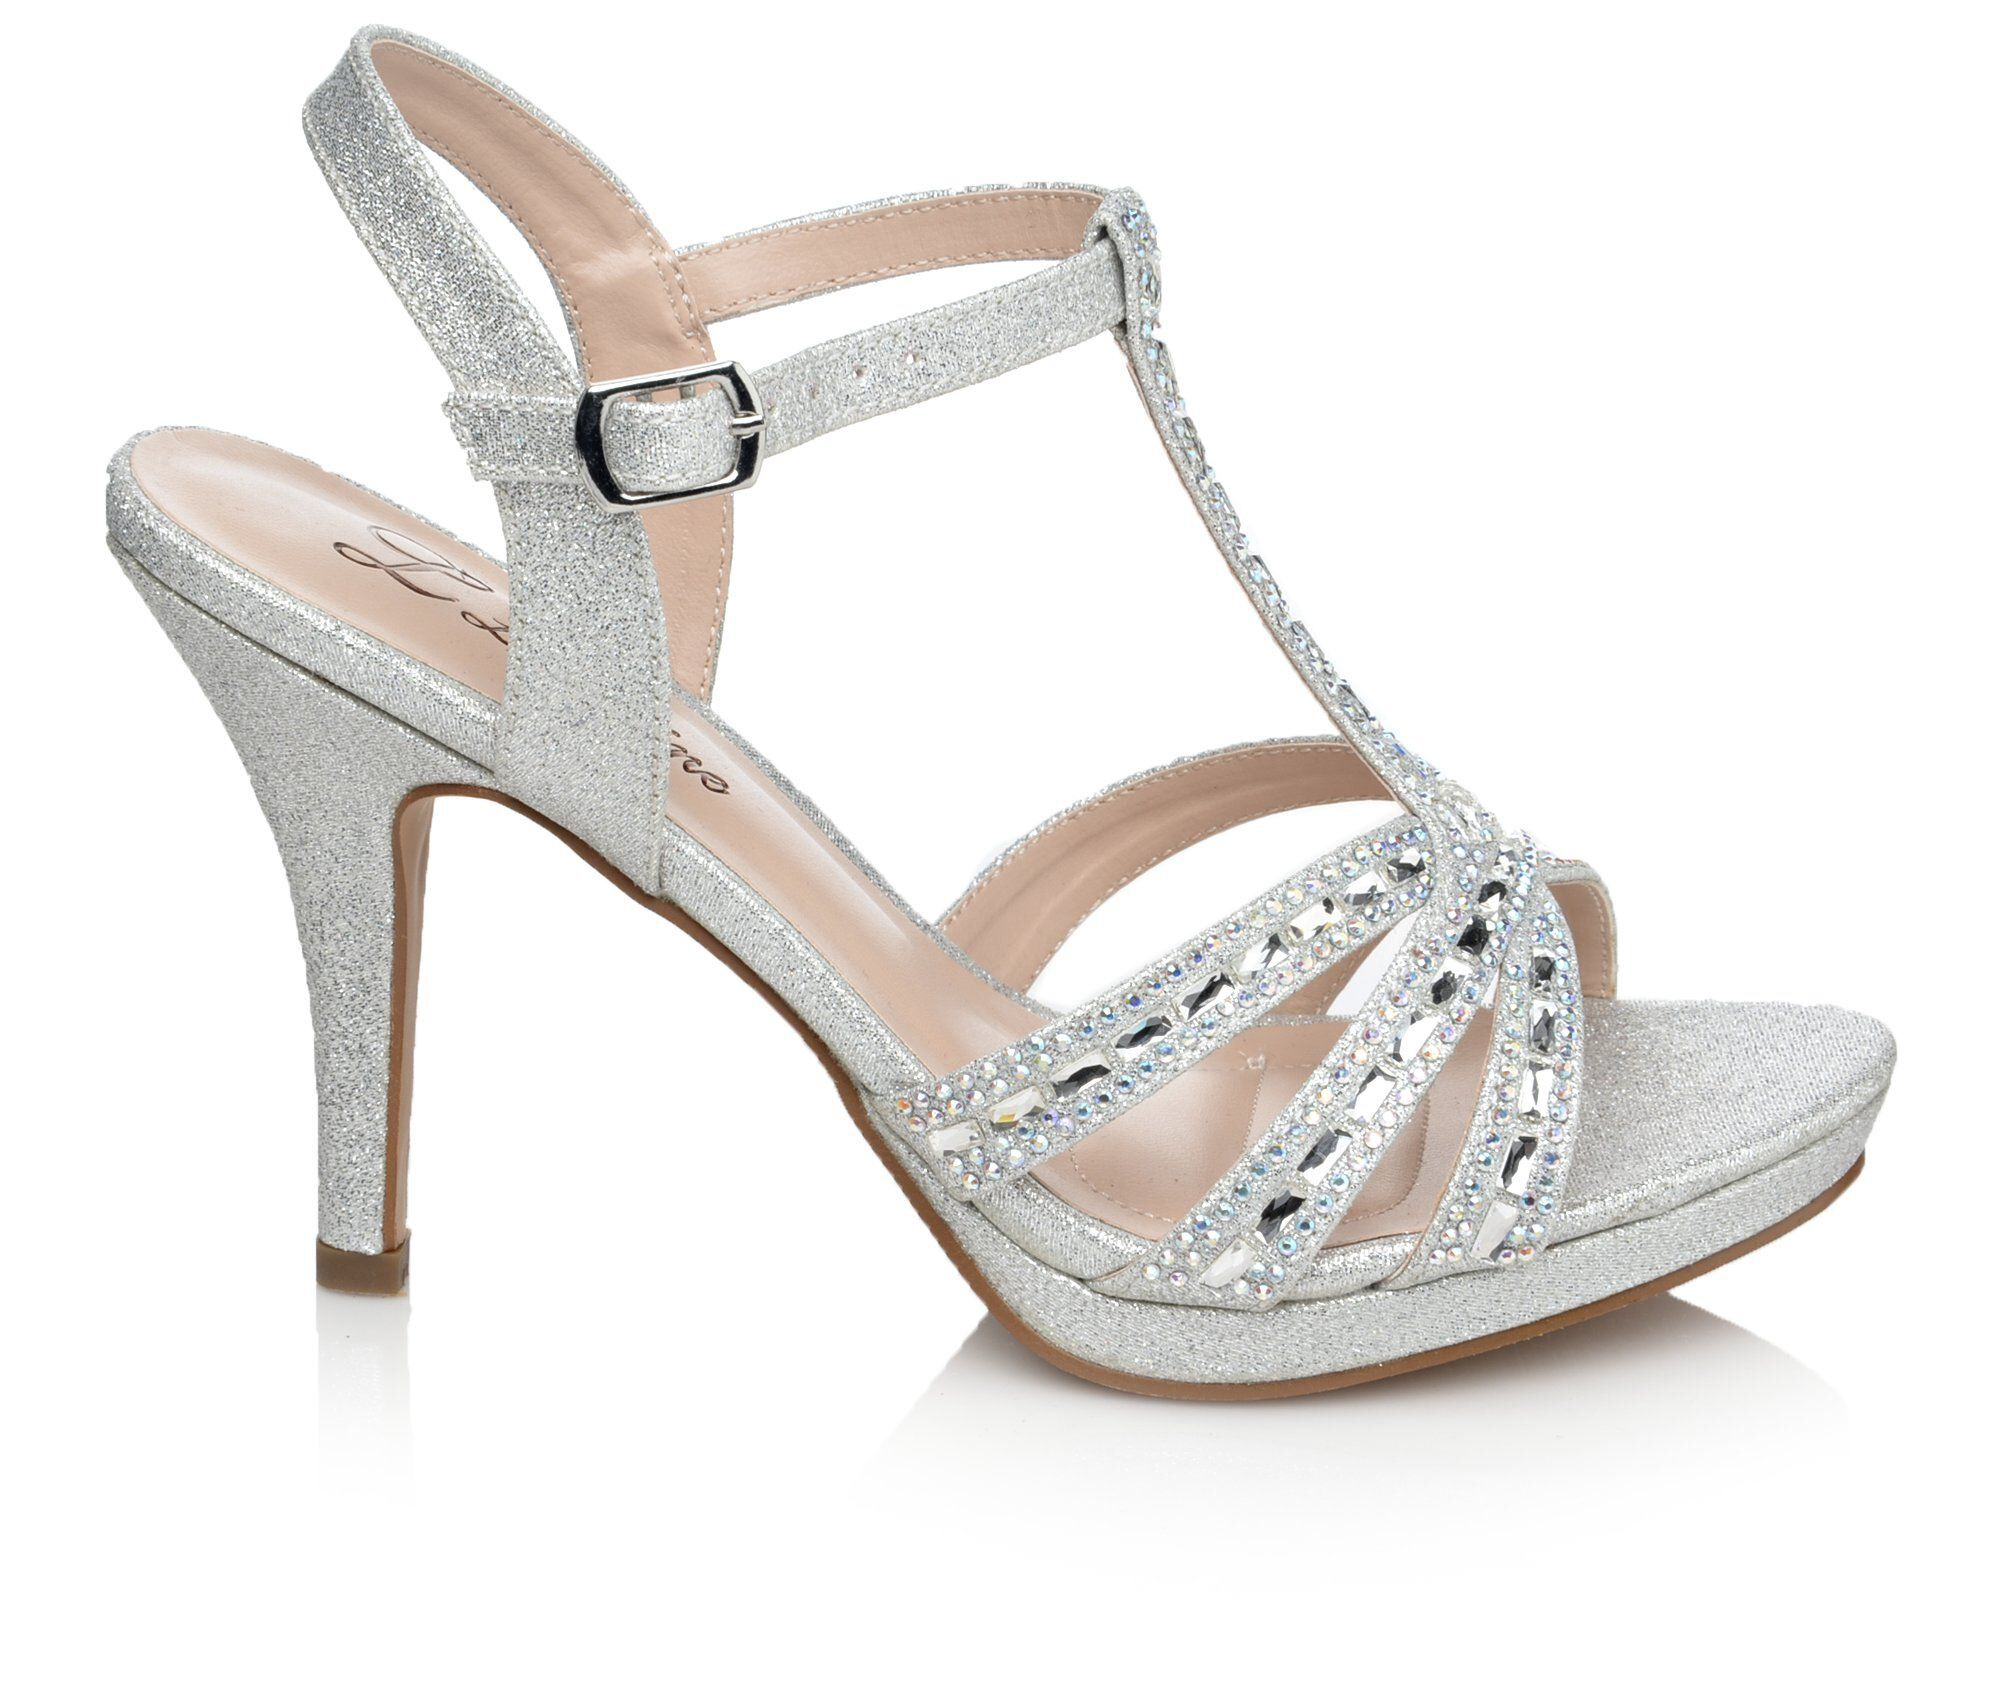 Women's LLorraine Lilly Strappy Heeled Dress Sandals Silver